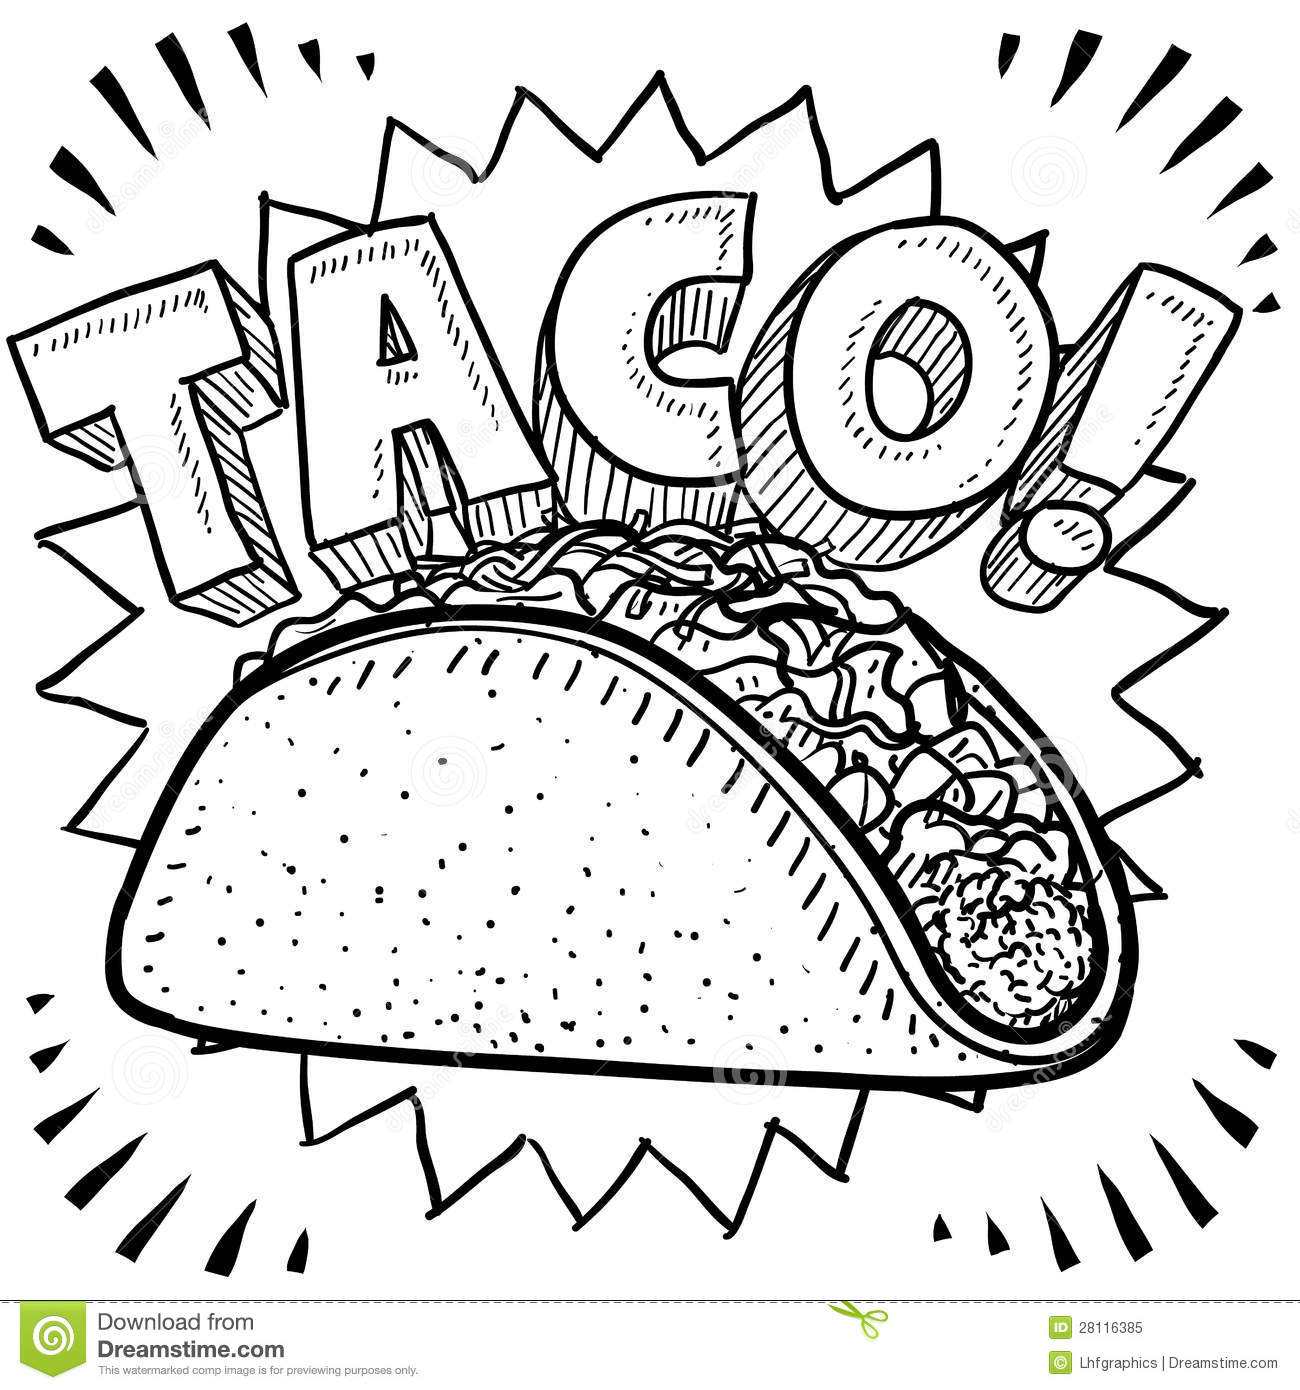 cute taco clipart black and white - Clipground |Taco Salad Coloring Pages